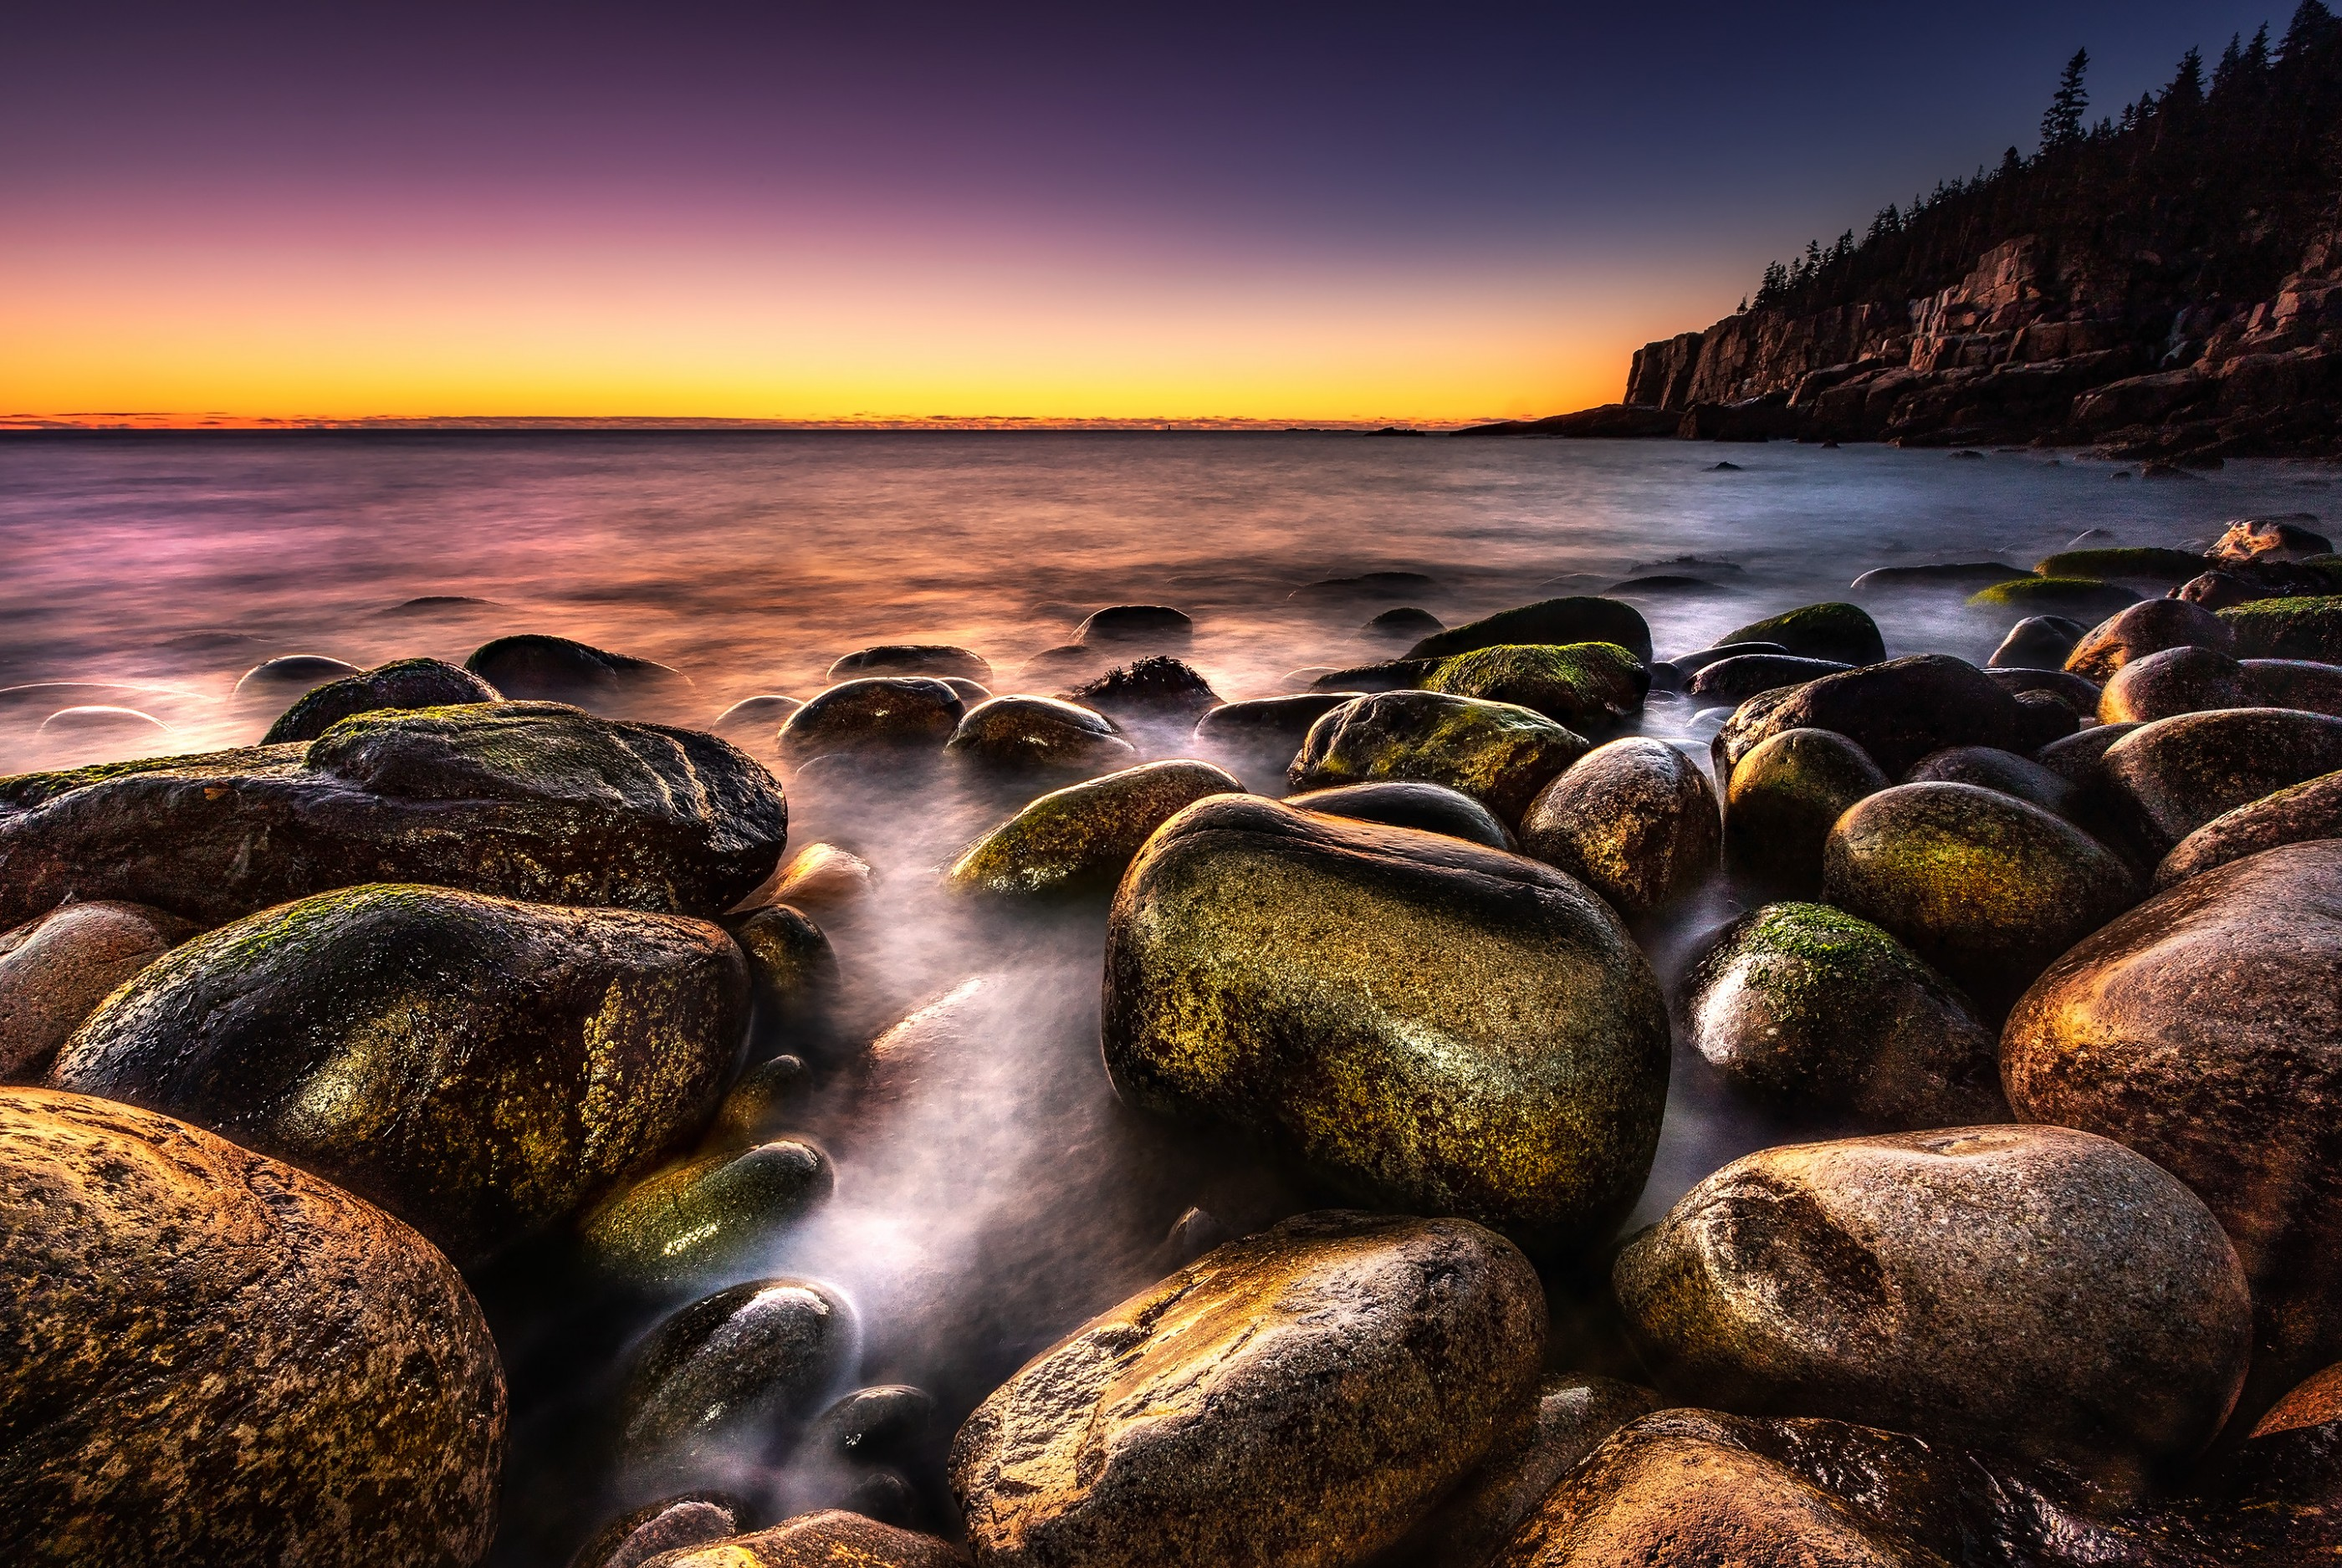 boulder-beach-sunrise-acadia-maine-ash-newell